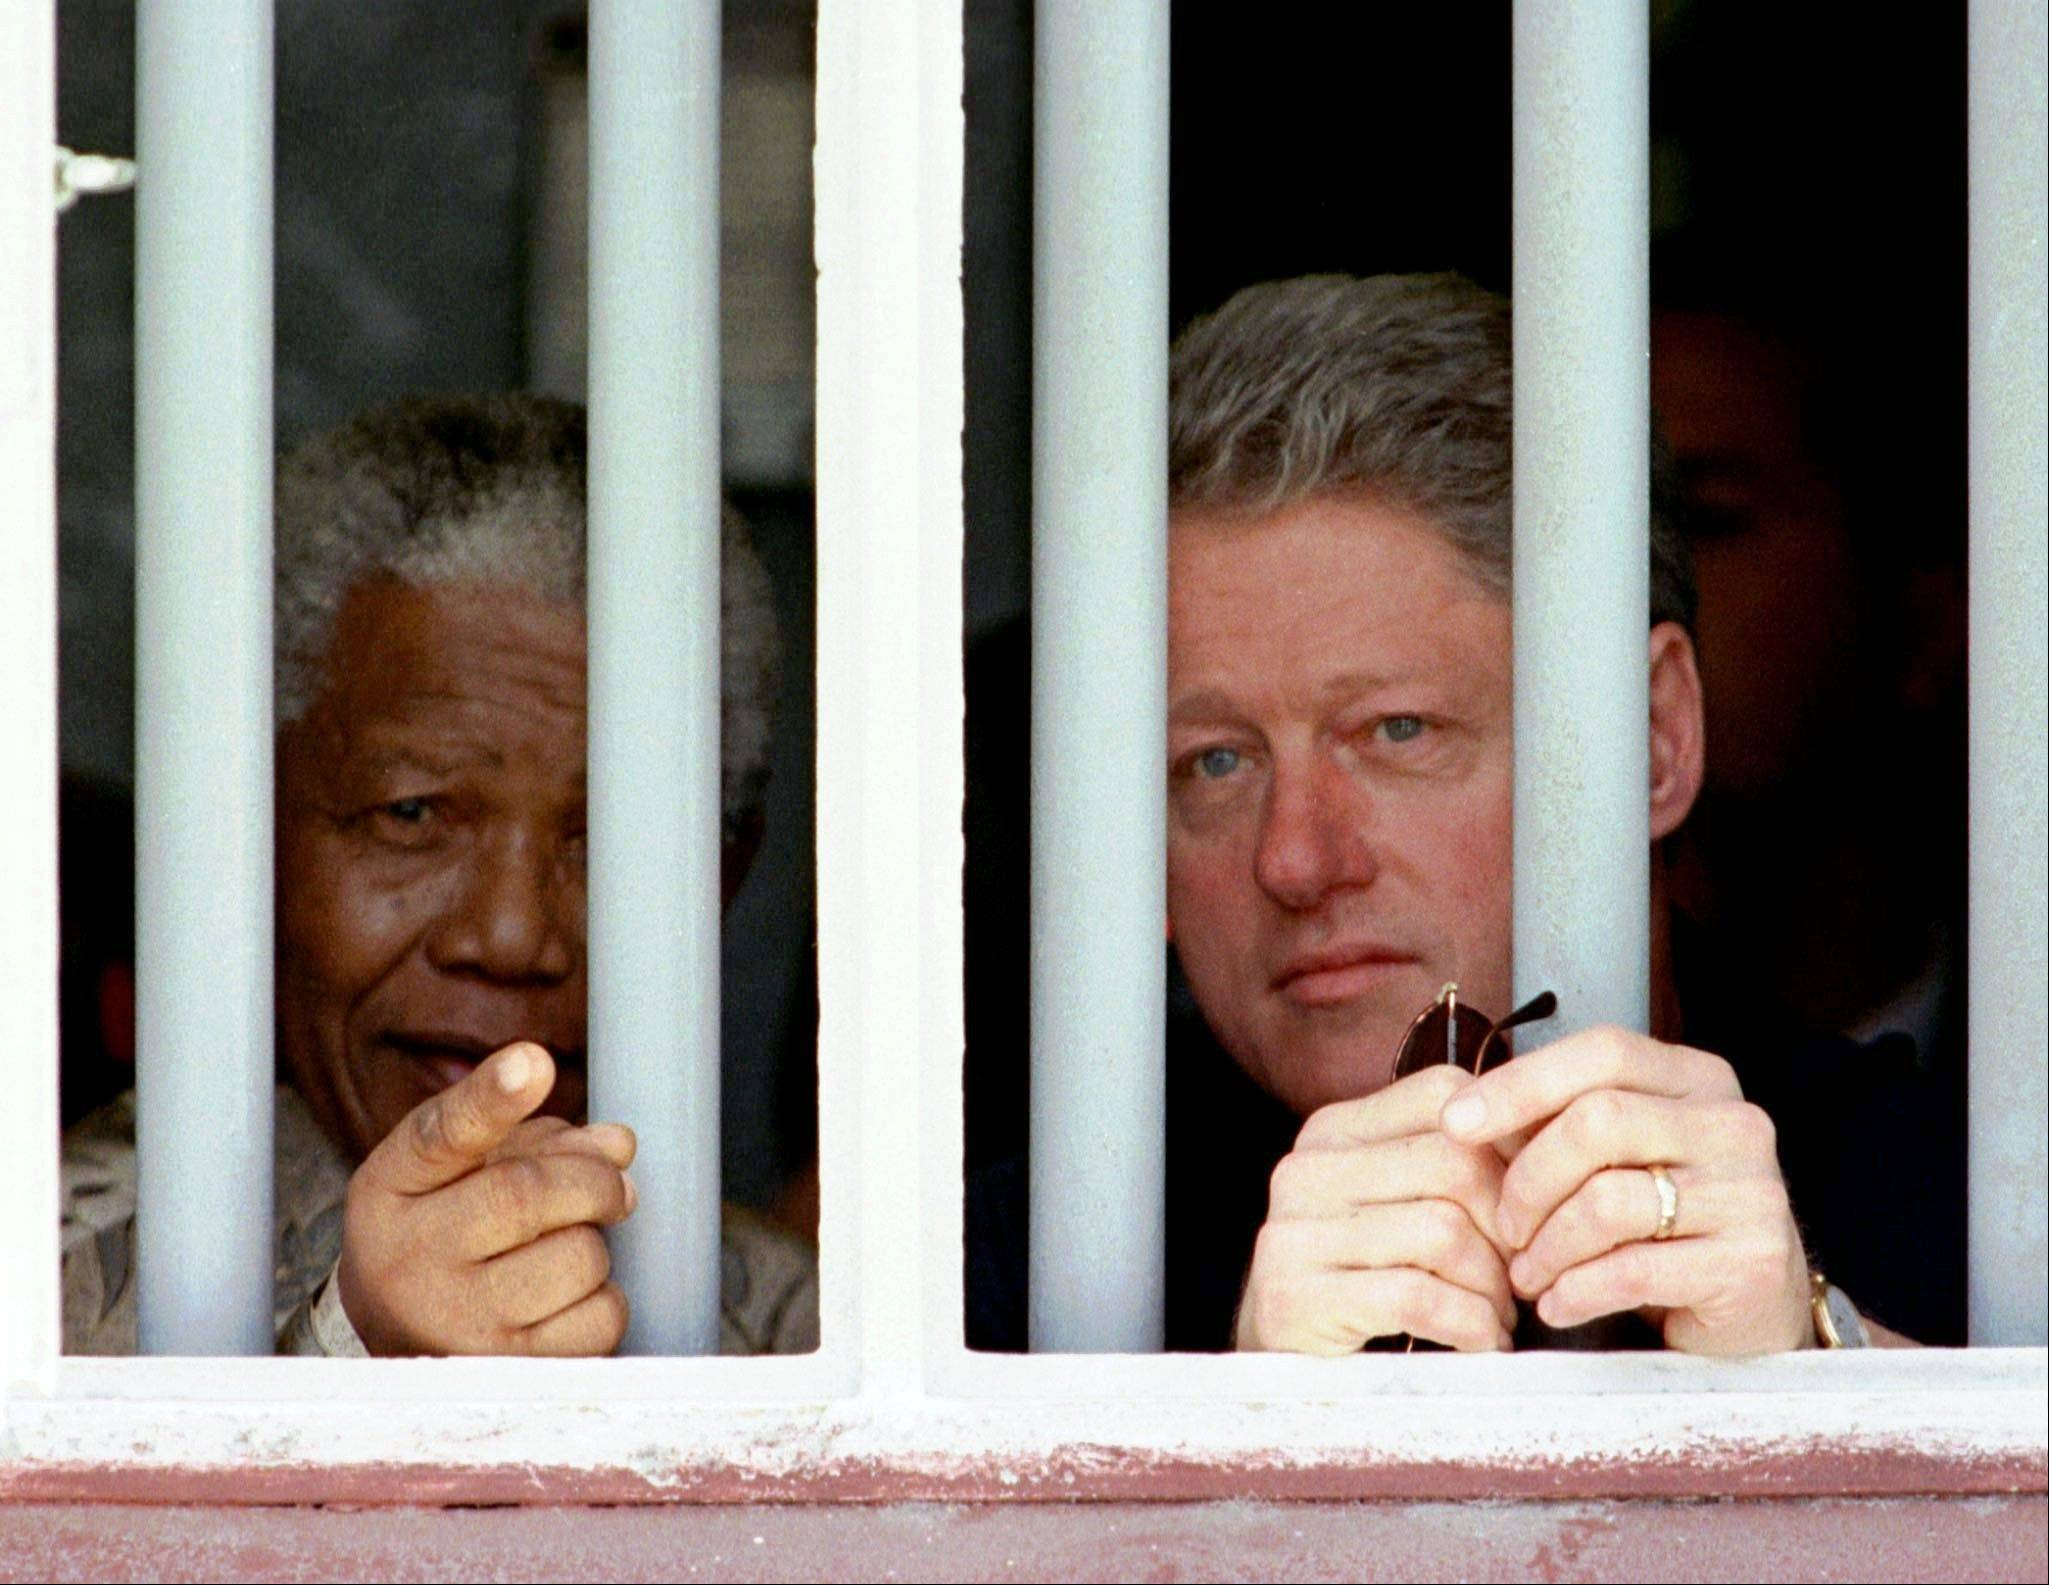 South African President Nelson Mandela, left, and President Bill Clinton peer through the bars of prison cell No. 5, the cramped cell where Mandela was jailed for 18 years in his struggle against apartheid, on Robben Island, South Africa, in this March 27, 1998, file photo.